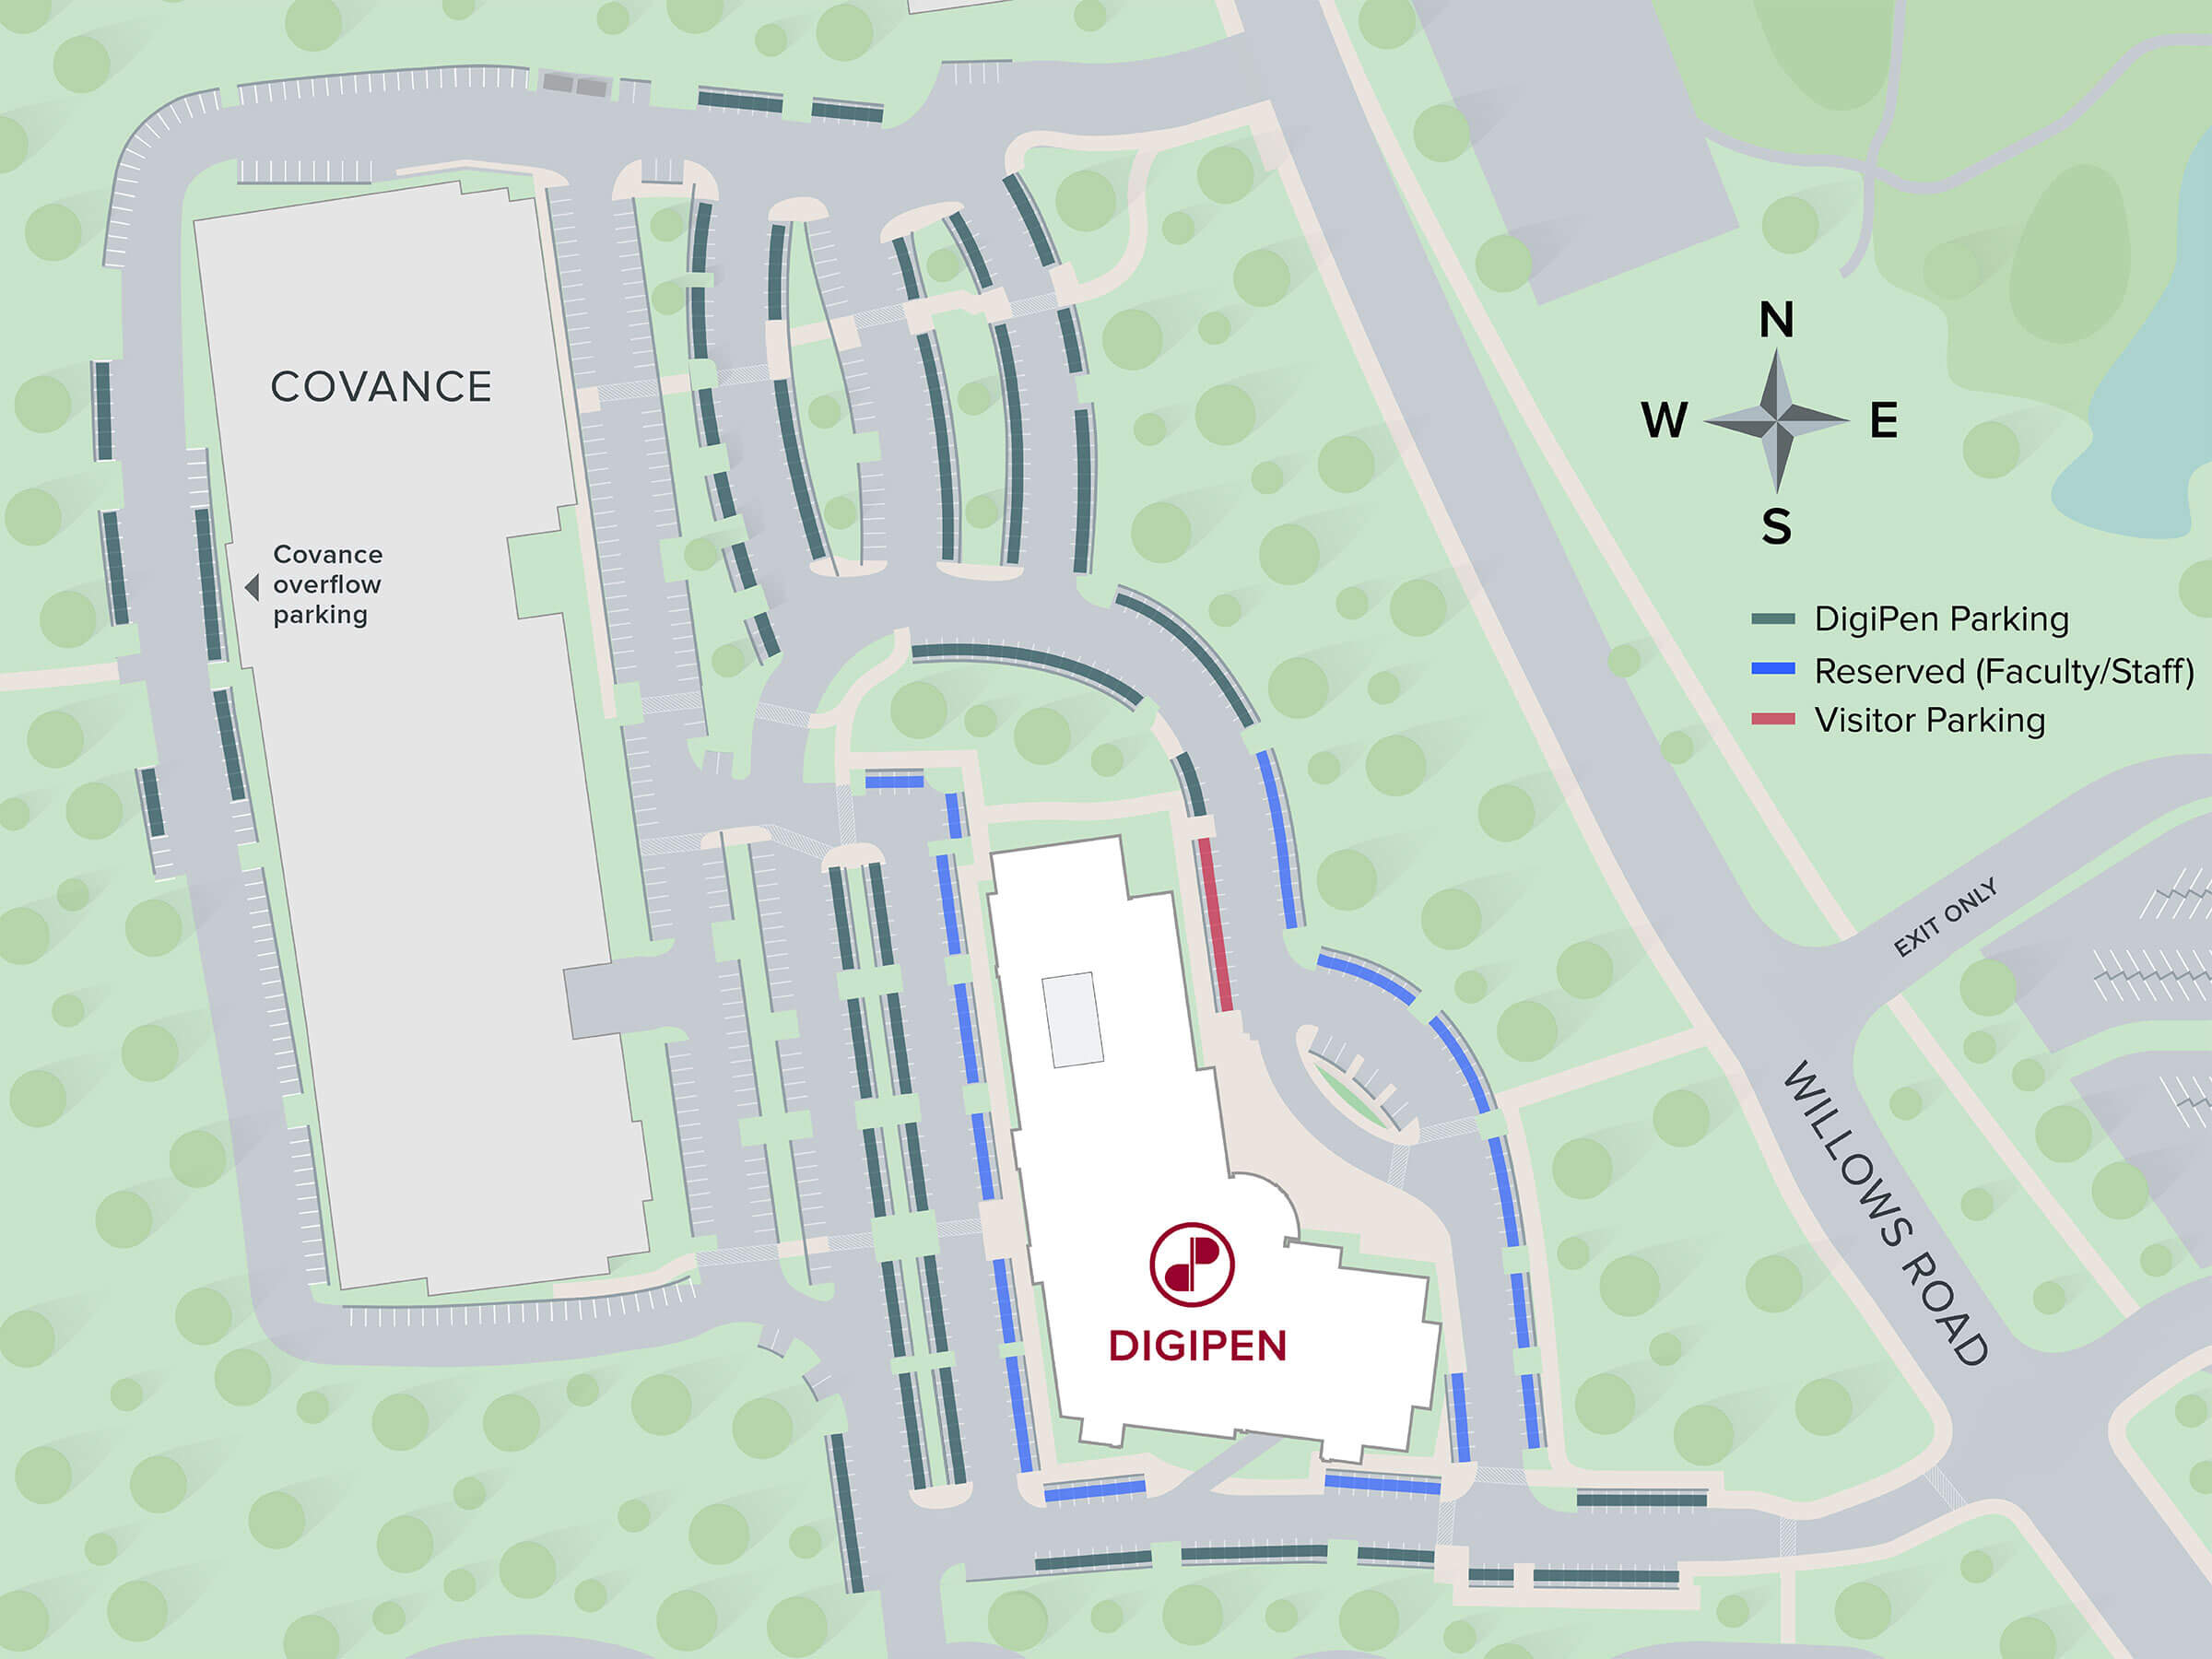 Map of DigiPen parking area